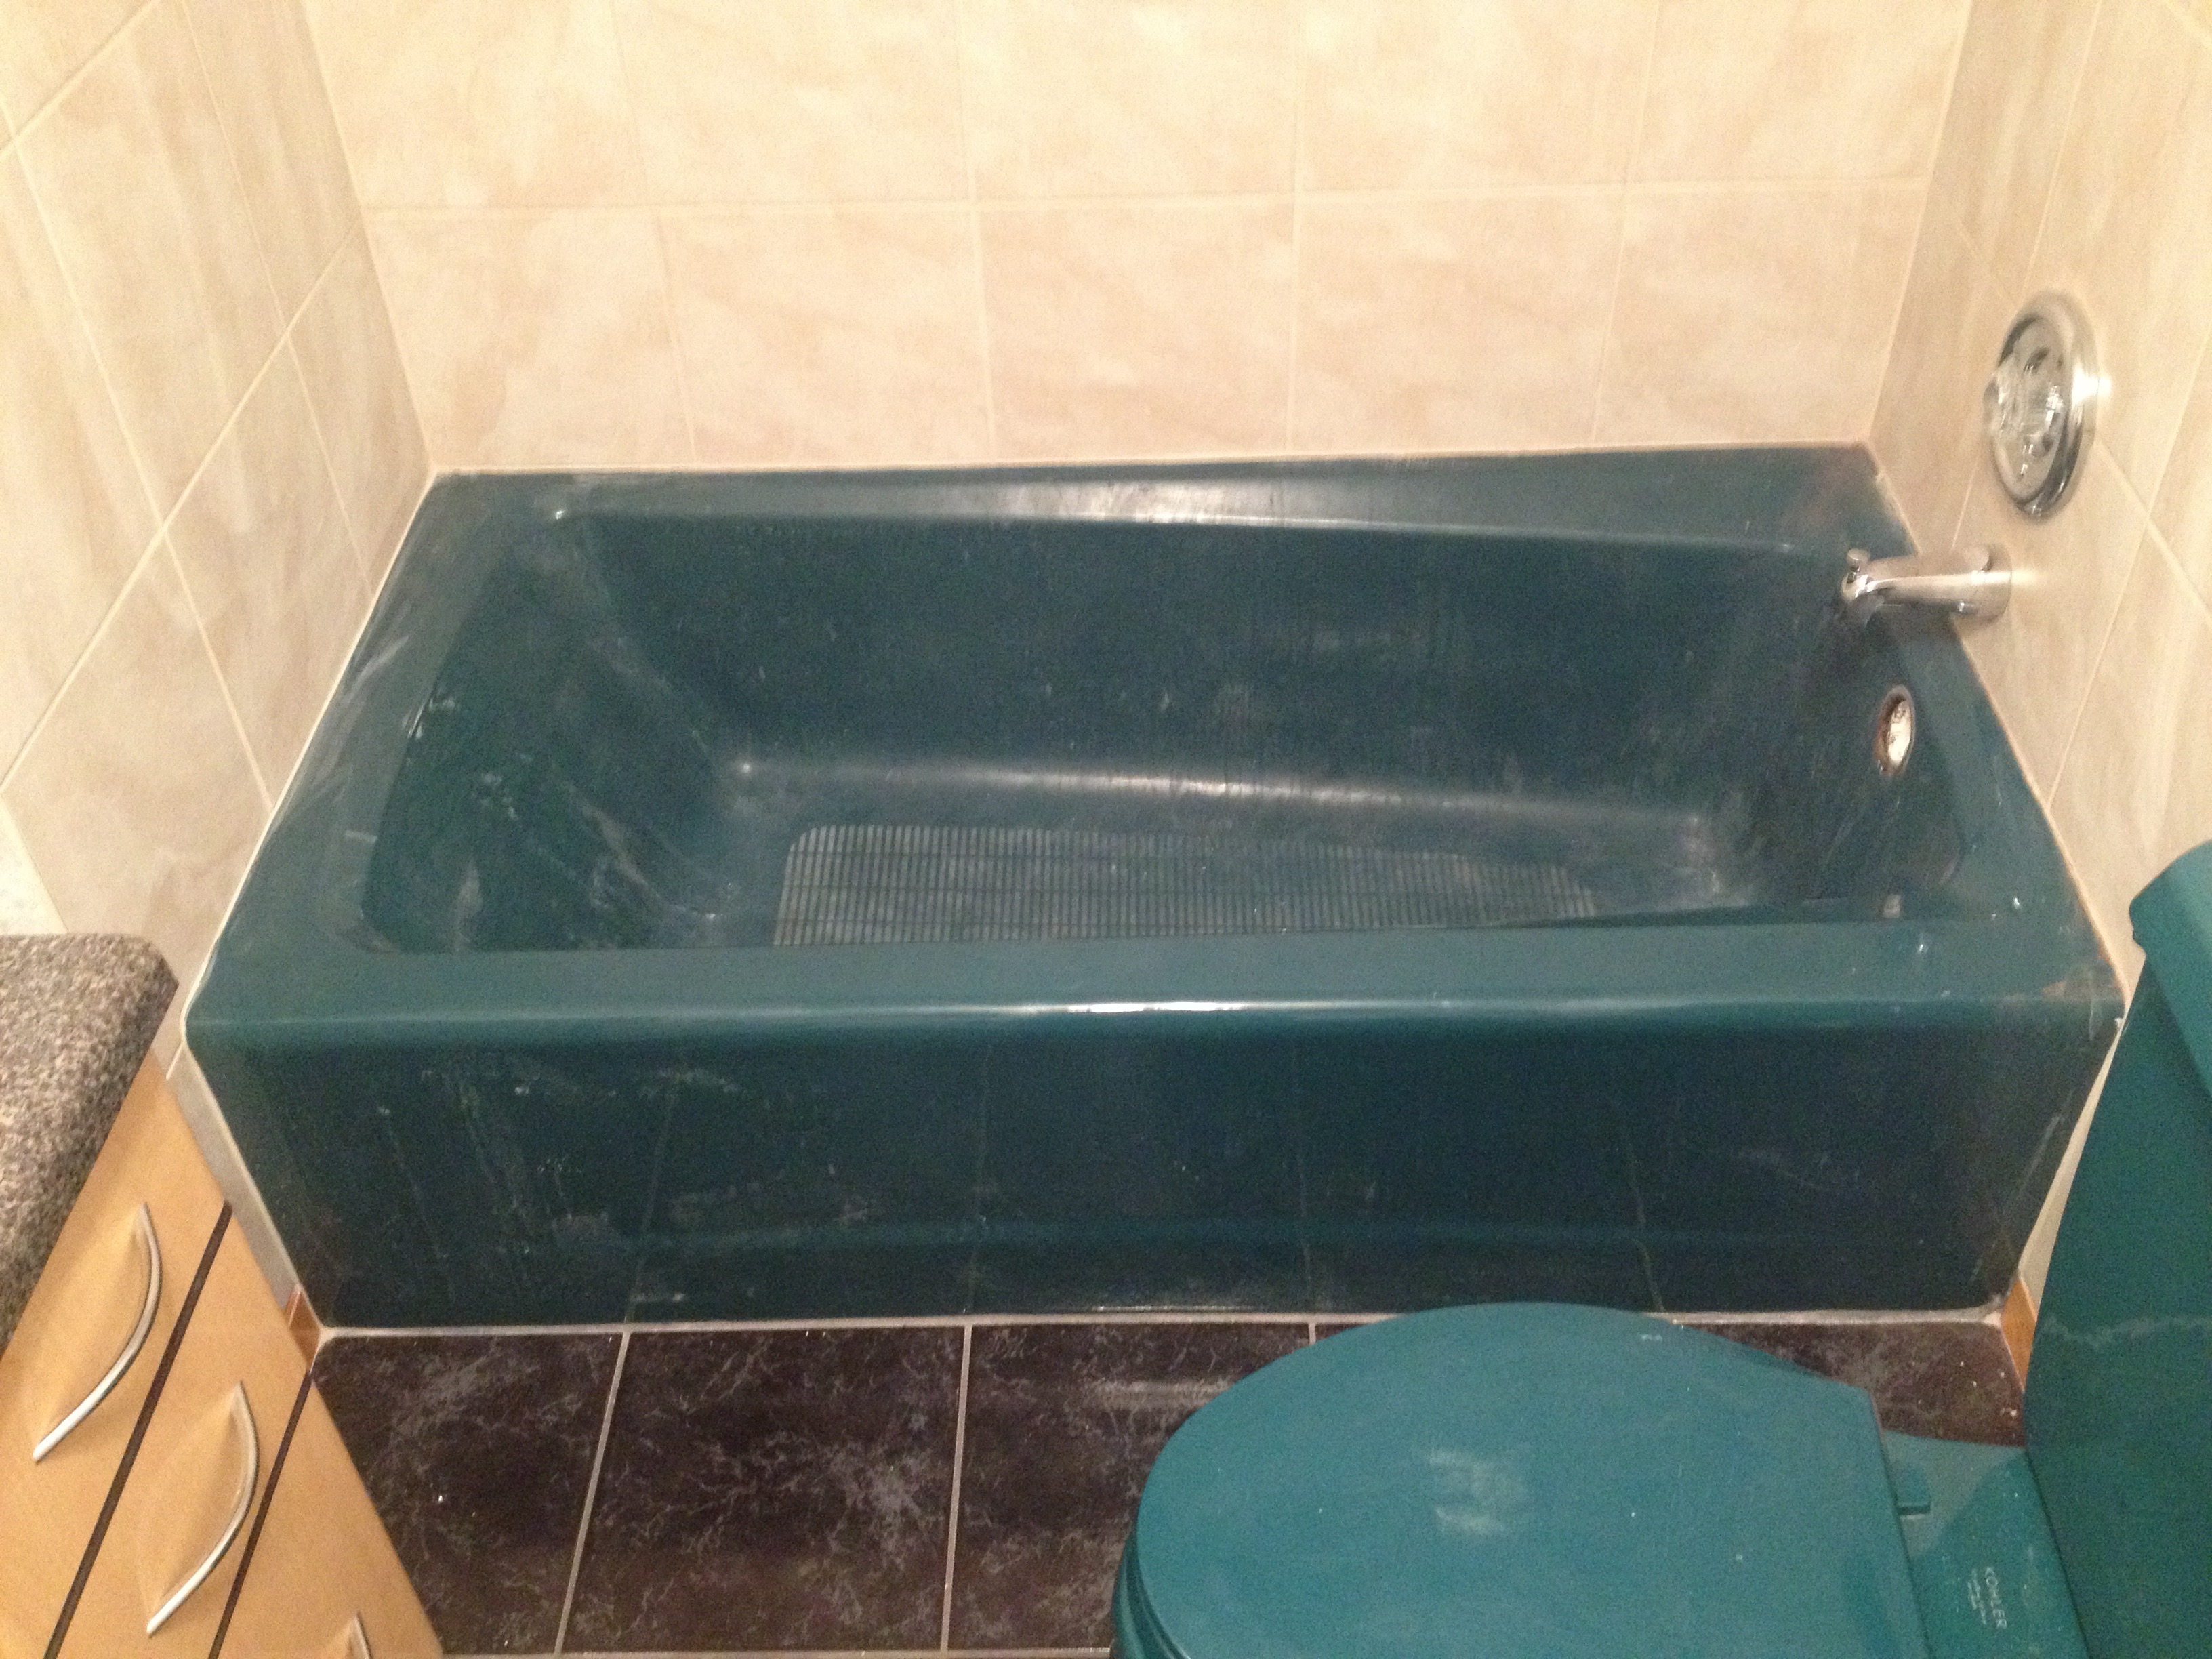 Cast iron tub in green